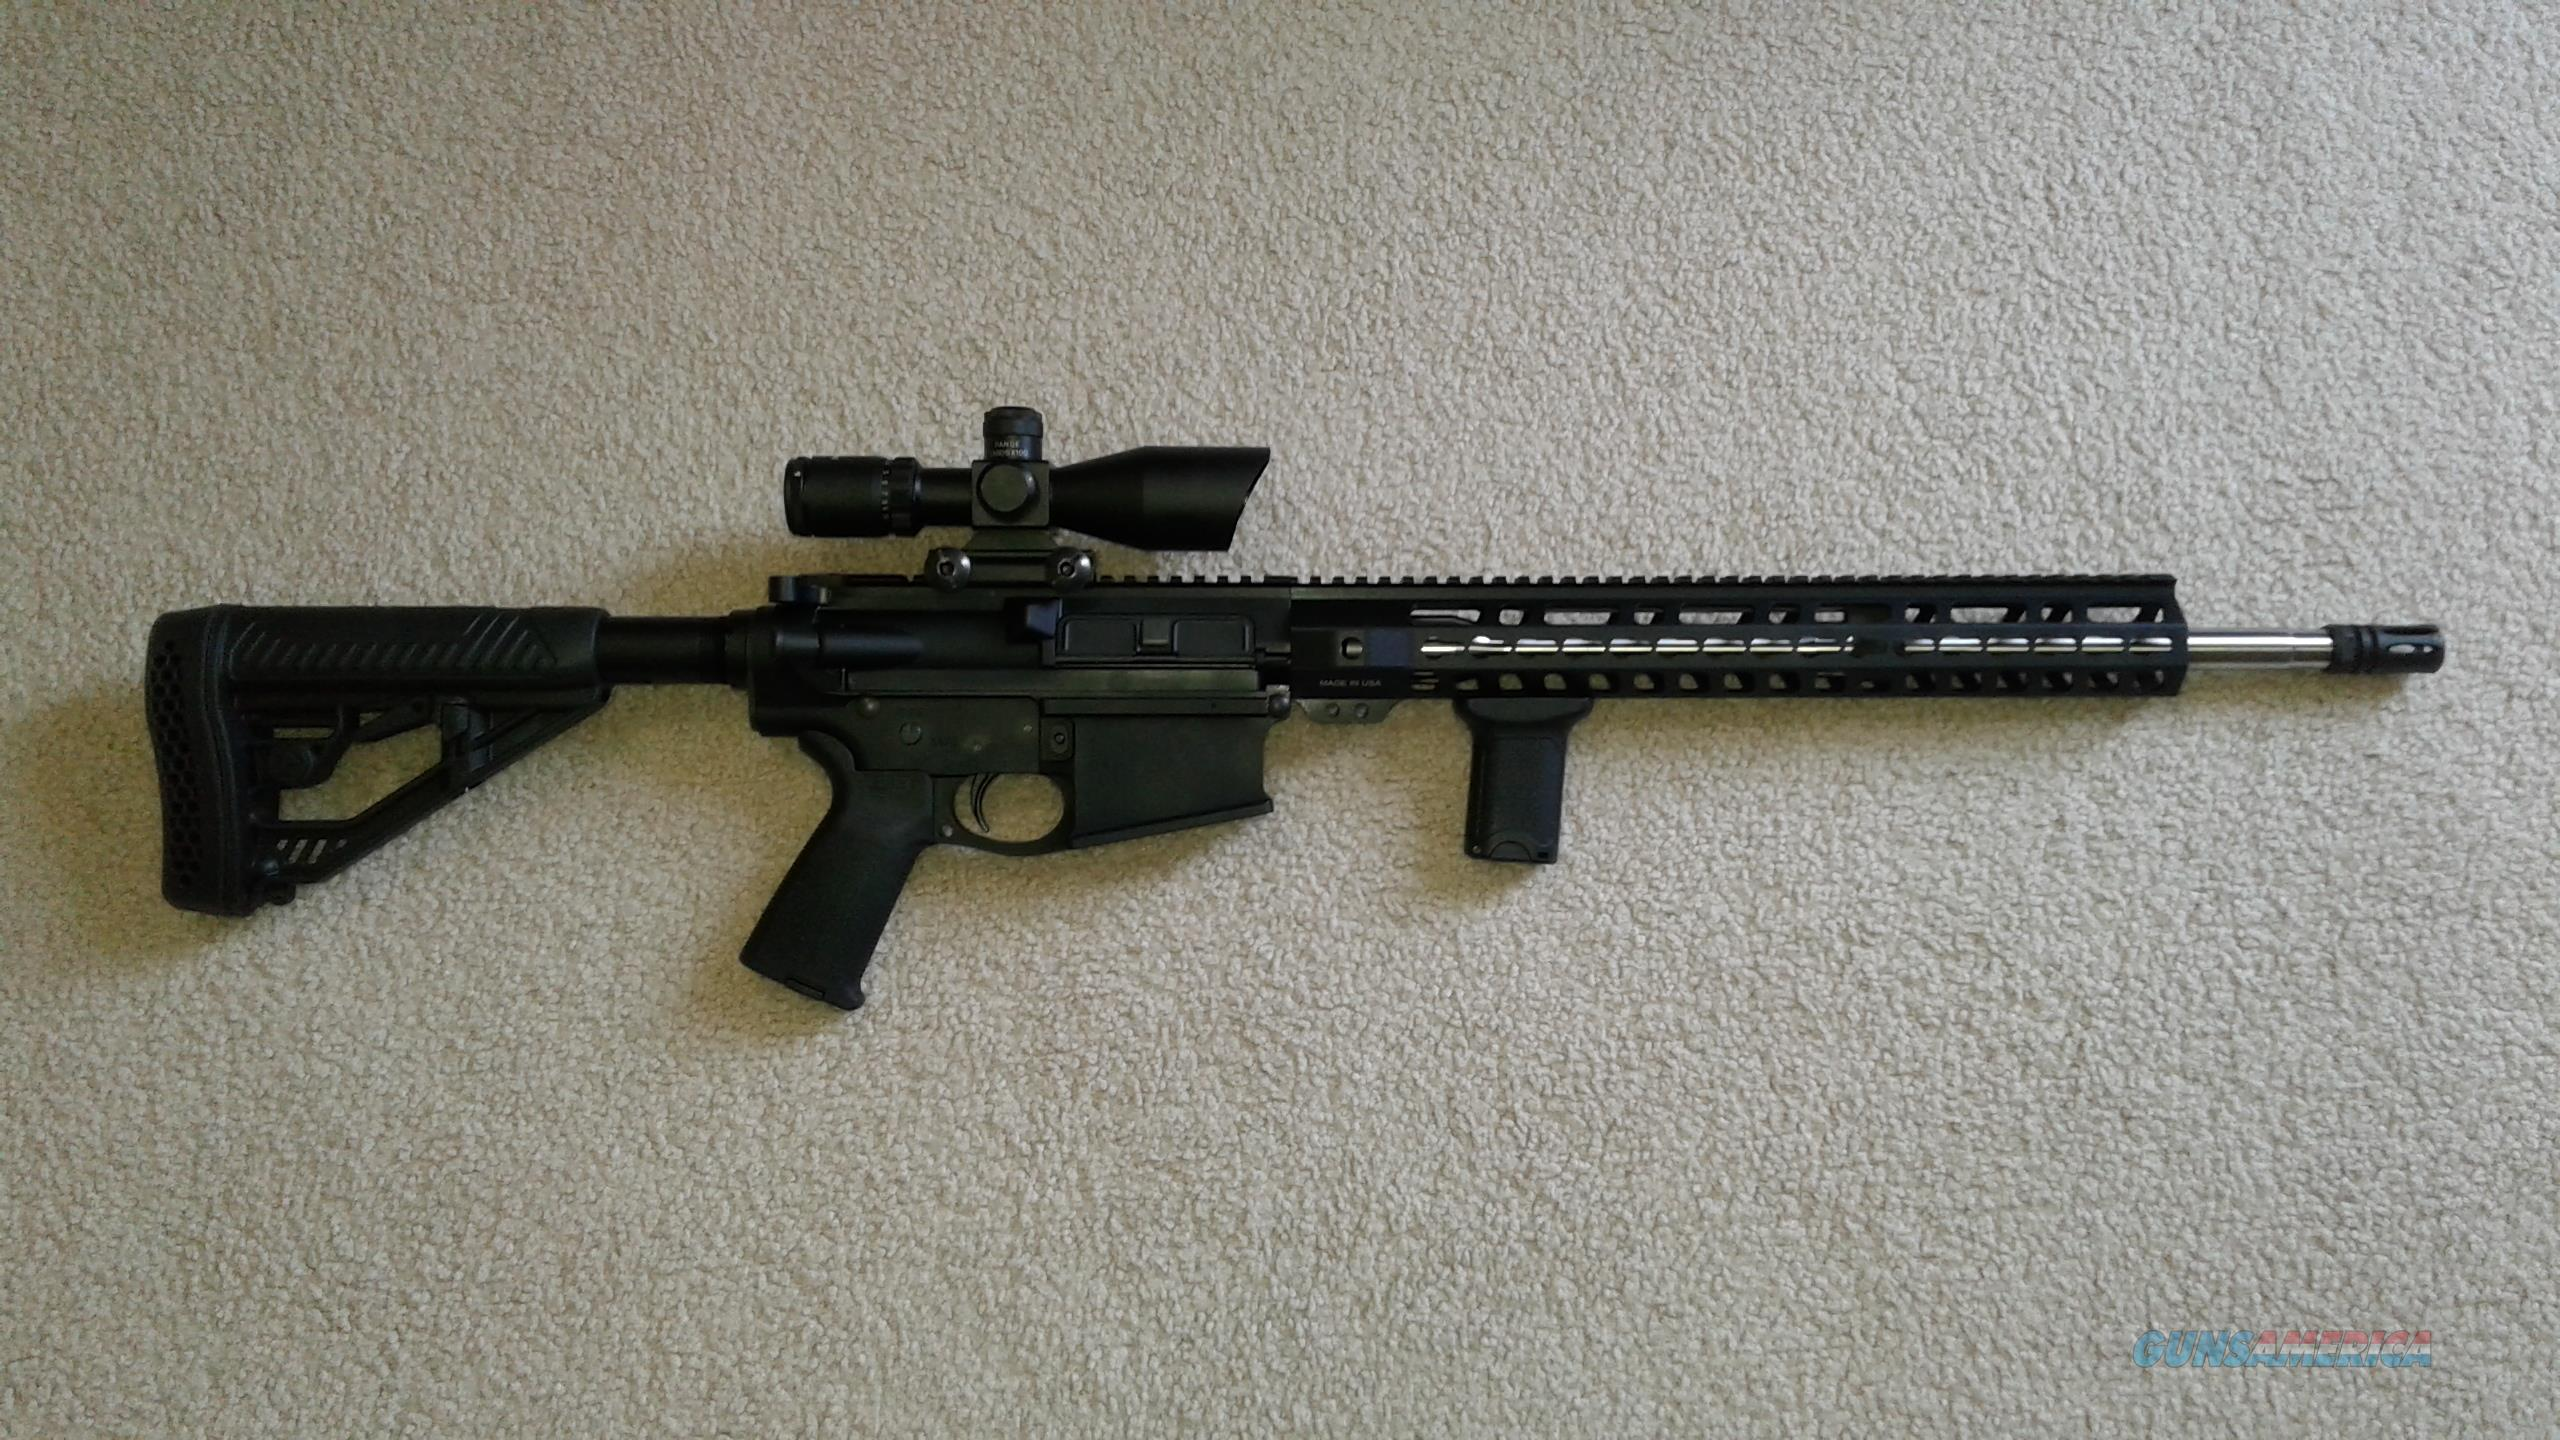 Palmetto State Armory A10 308   Guns > Rifles > AR-15 Rifles - Small Manufacturers > Complete Rifle